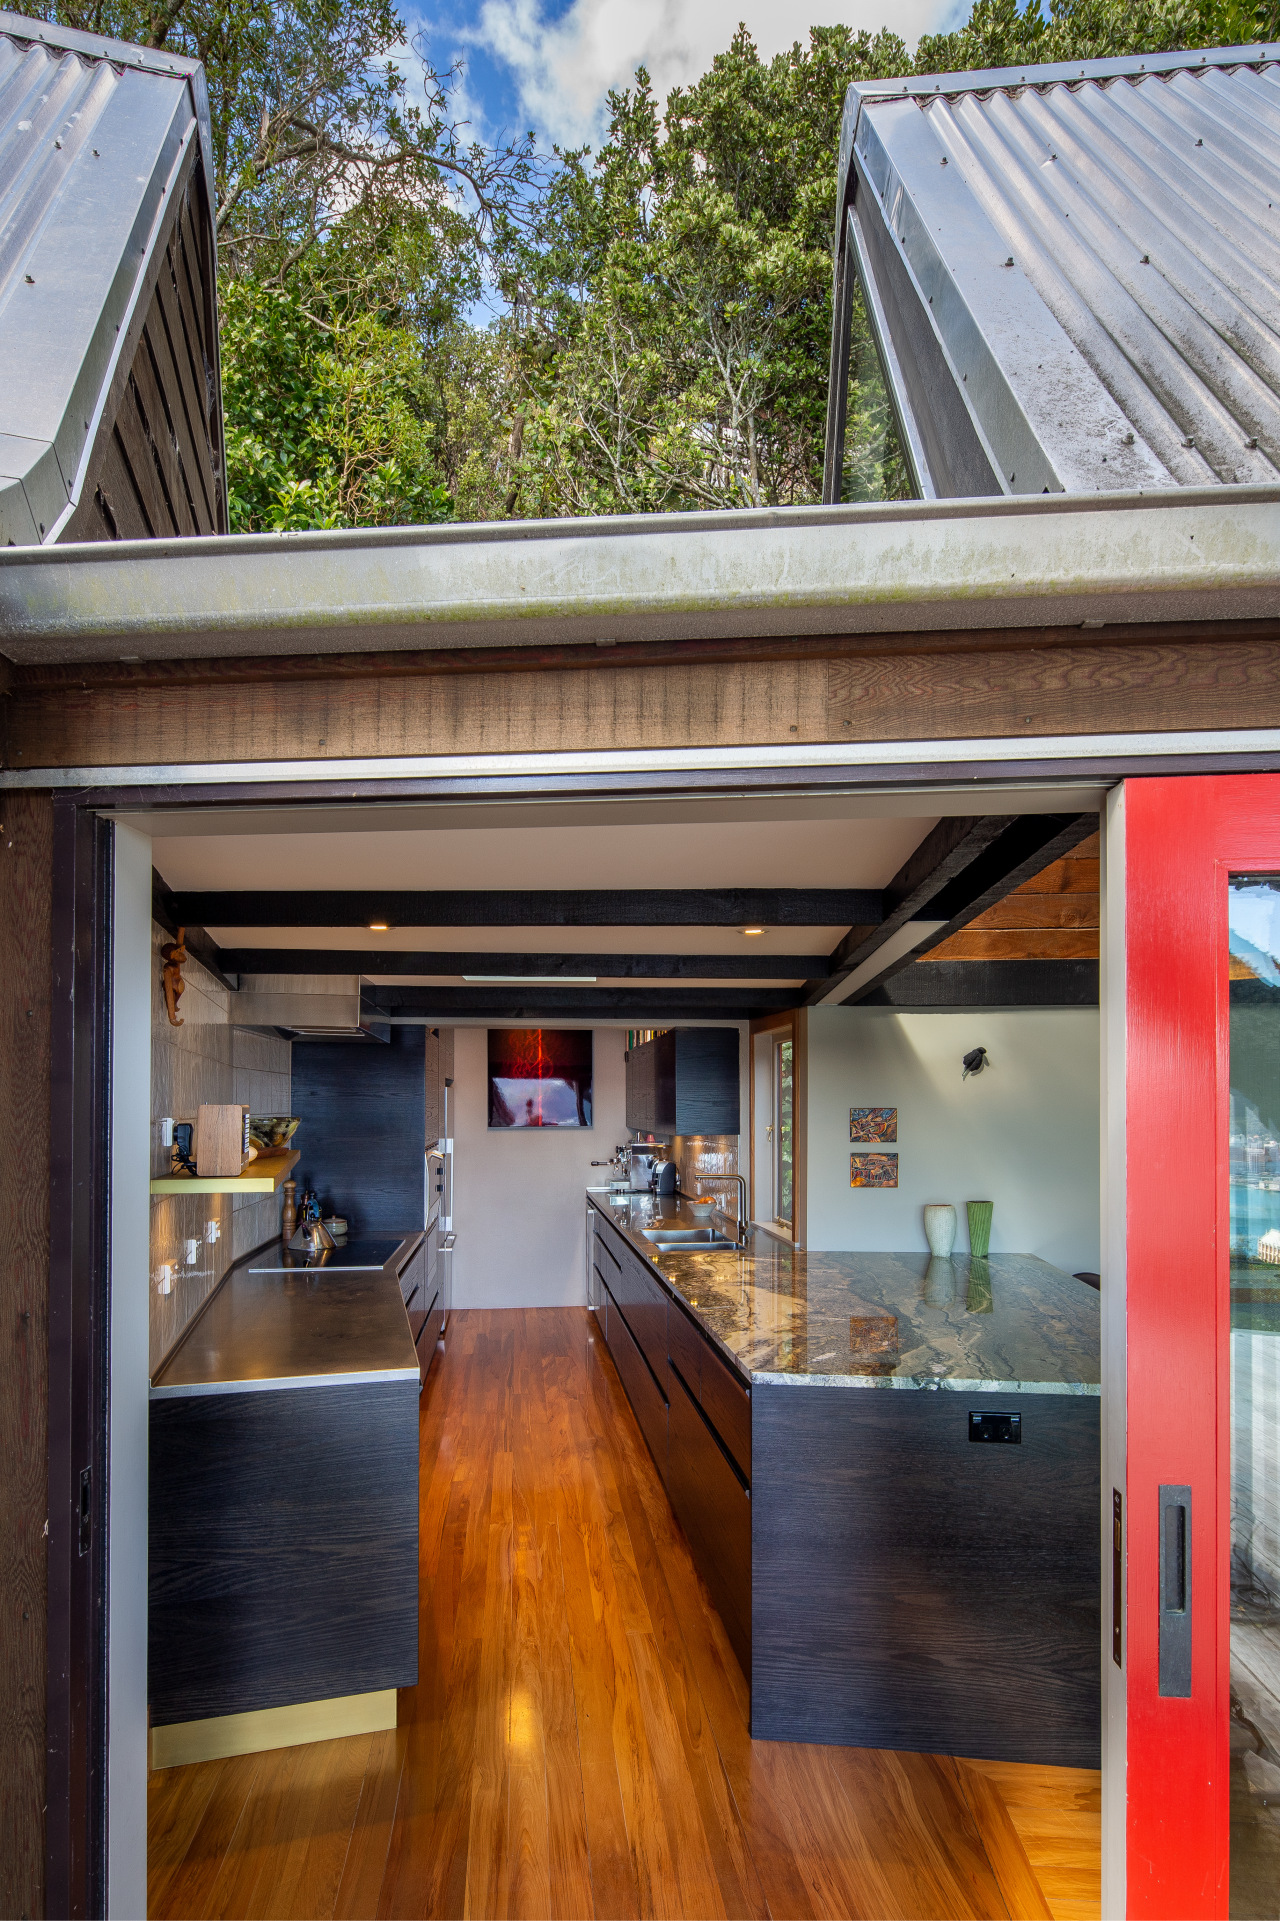 The kitchen space available was long and narrow,